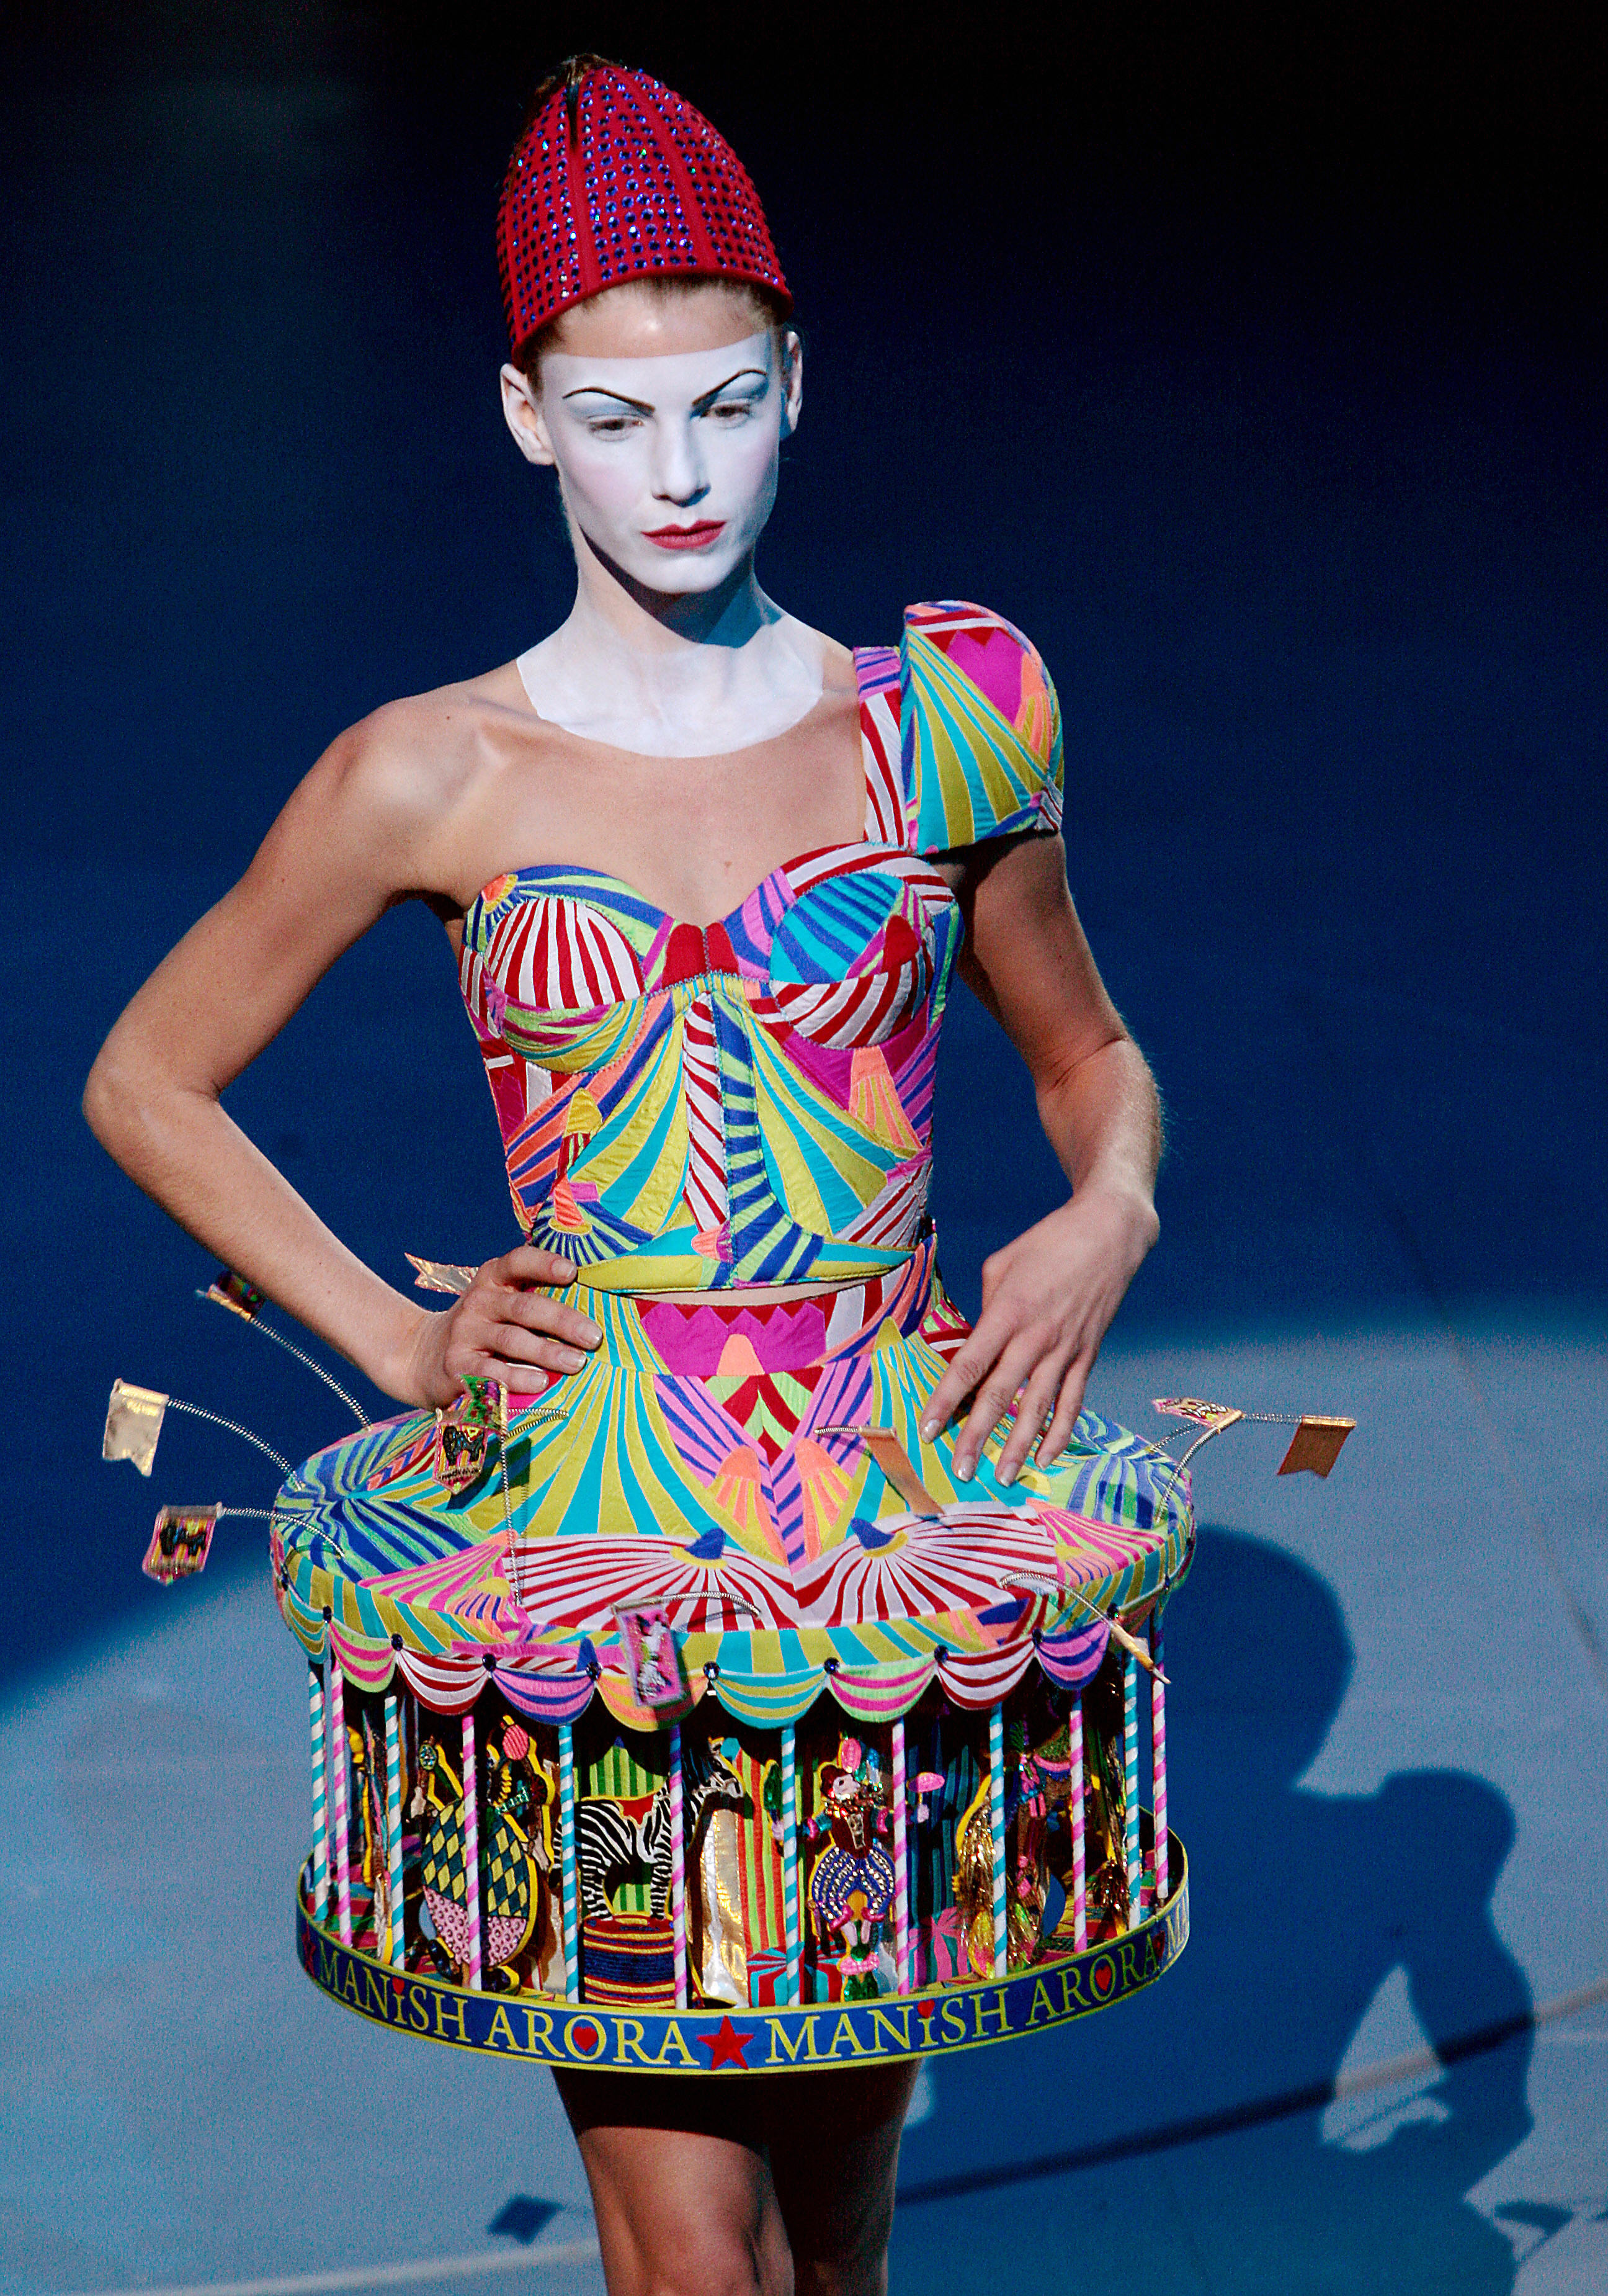 Paris Fashion Week: Manish Arora Spring 2009